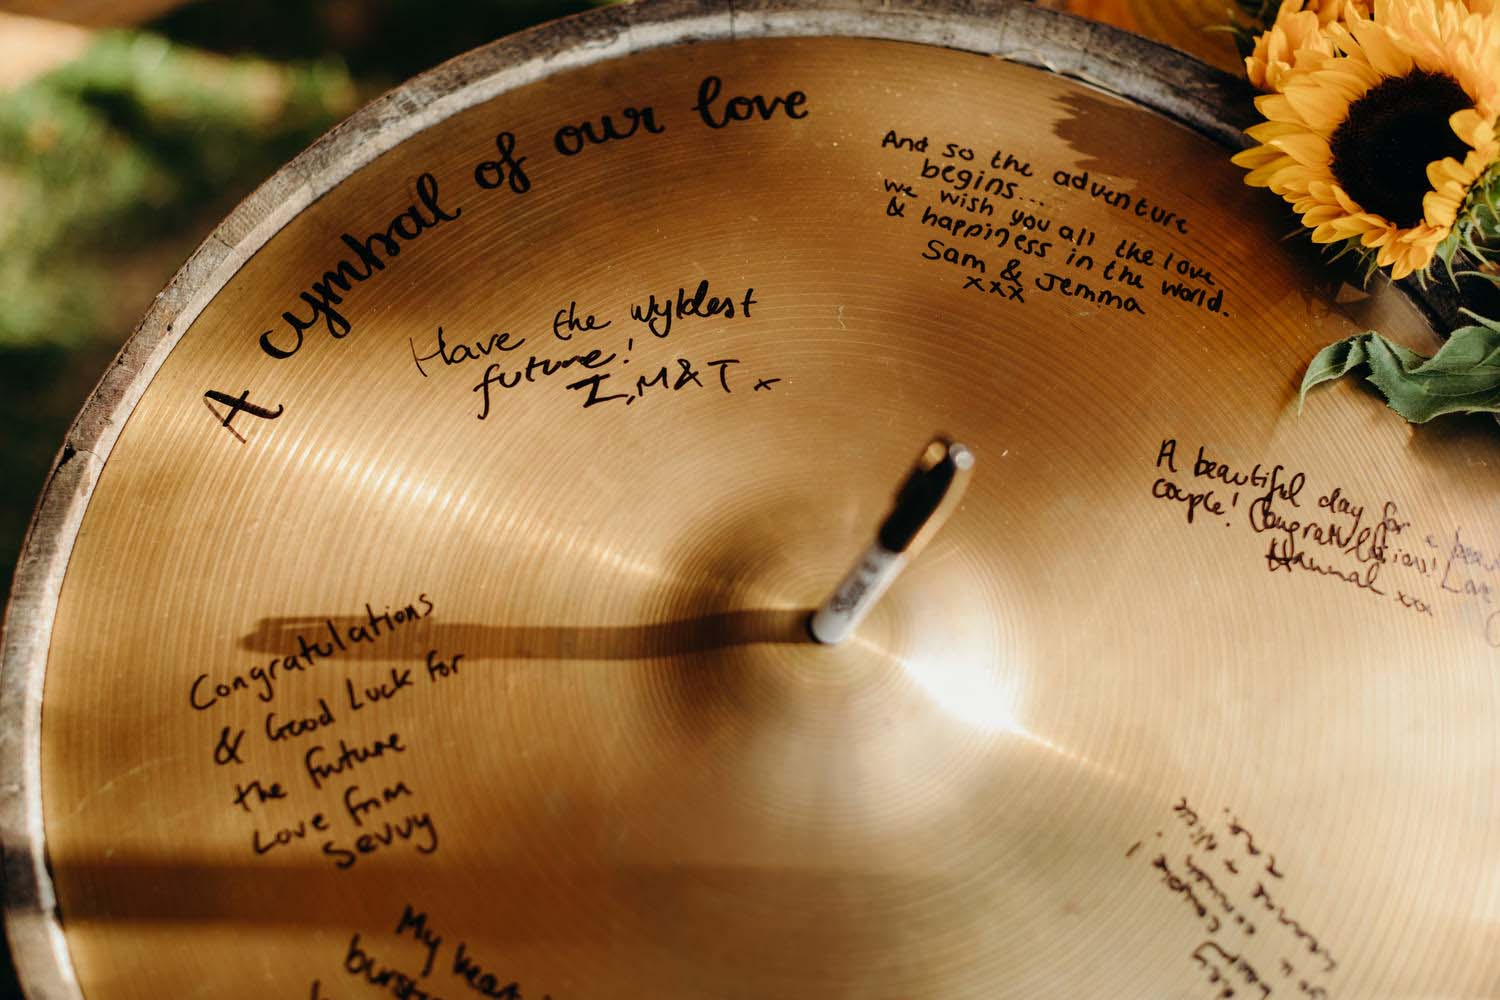 Signed cymbal for wedding